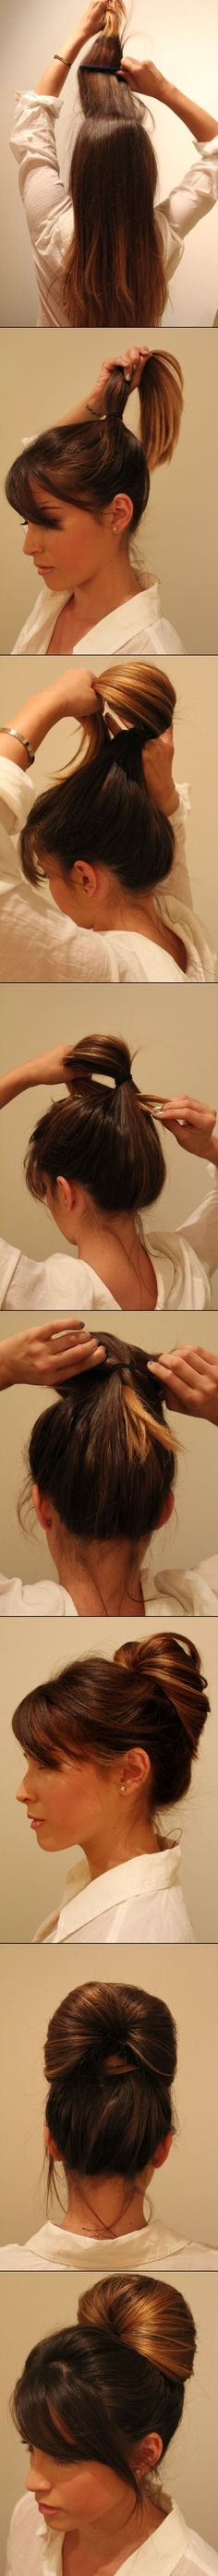 Easy Hairs Style